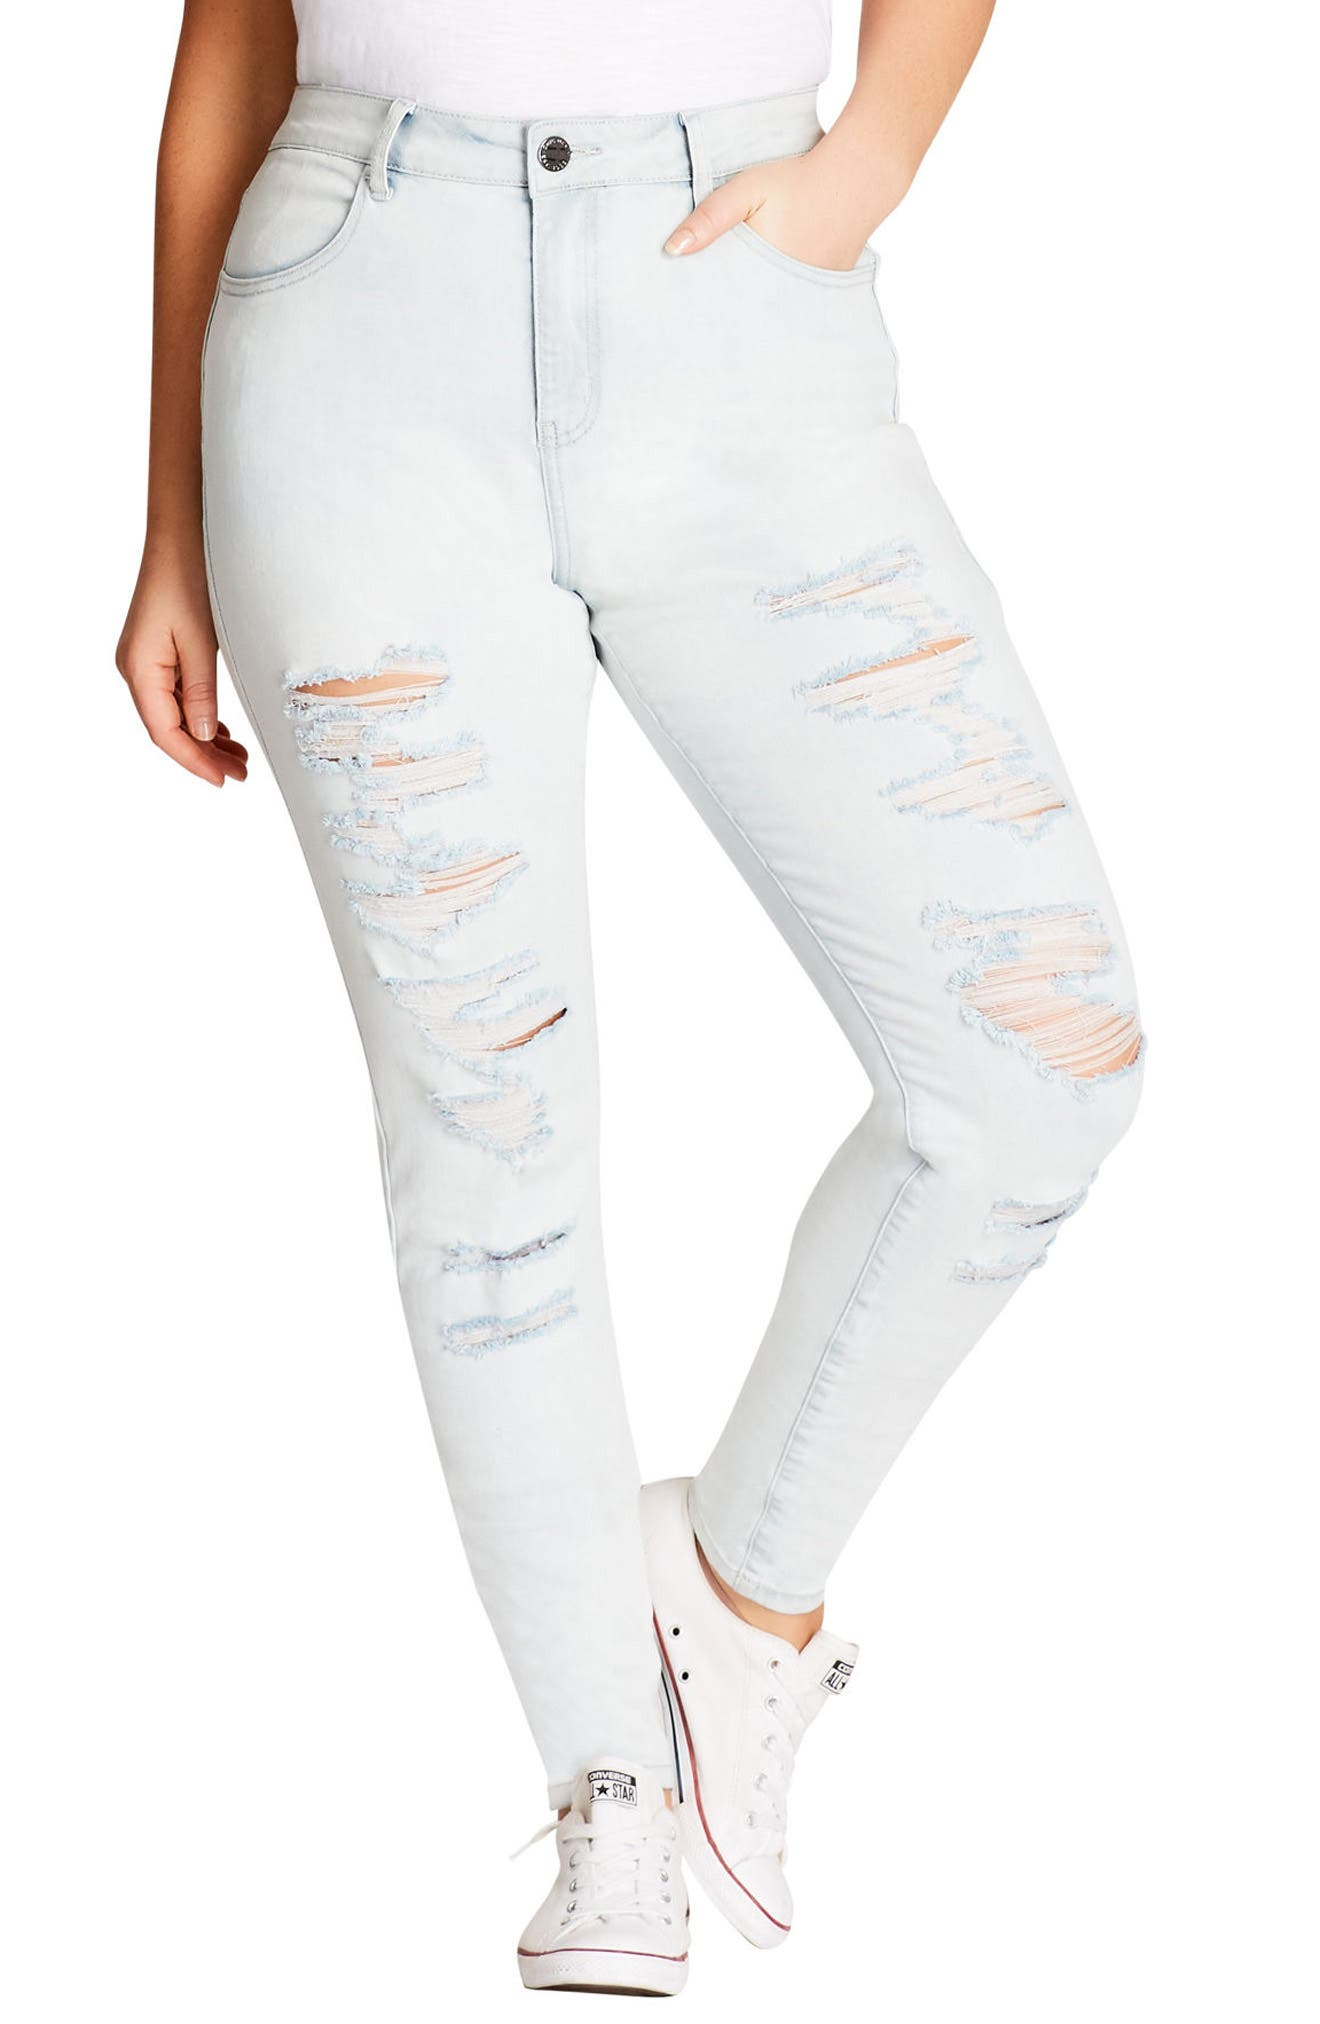 Main Image - City Chic Distressed Skinny Jeans (Plus Size)